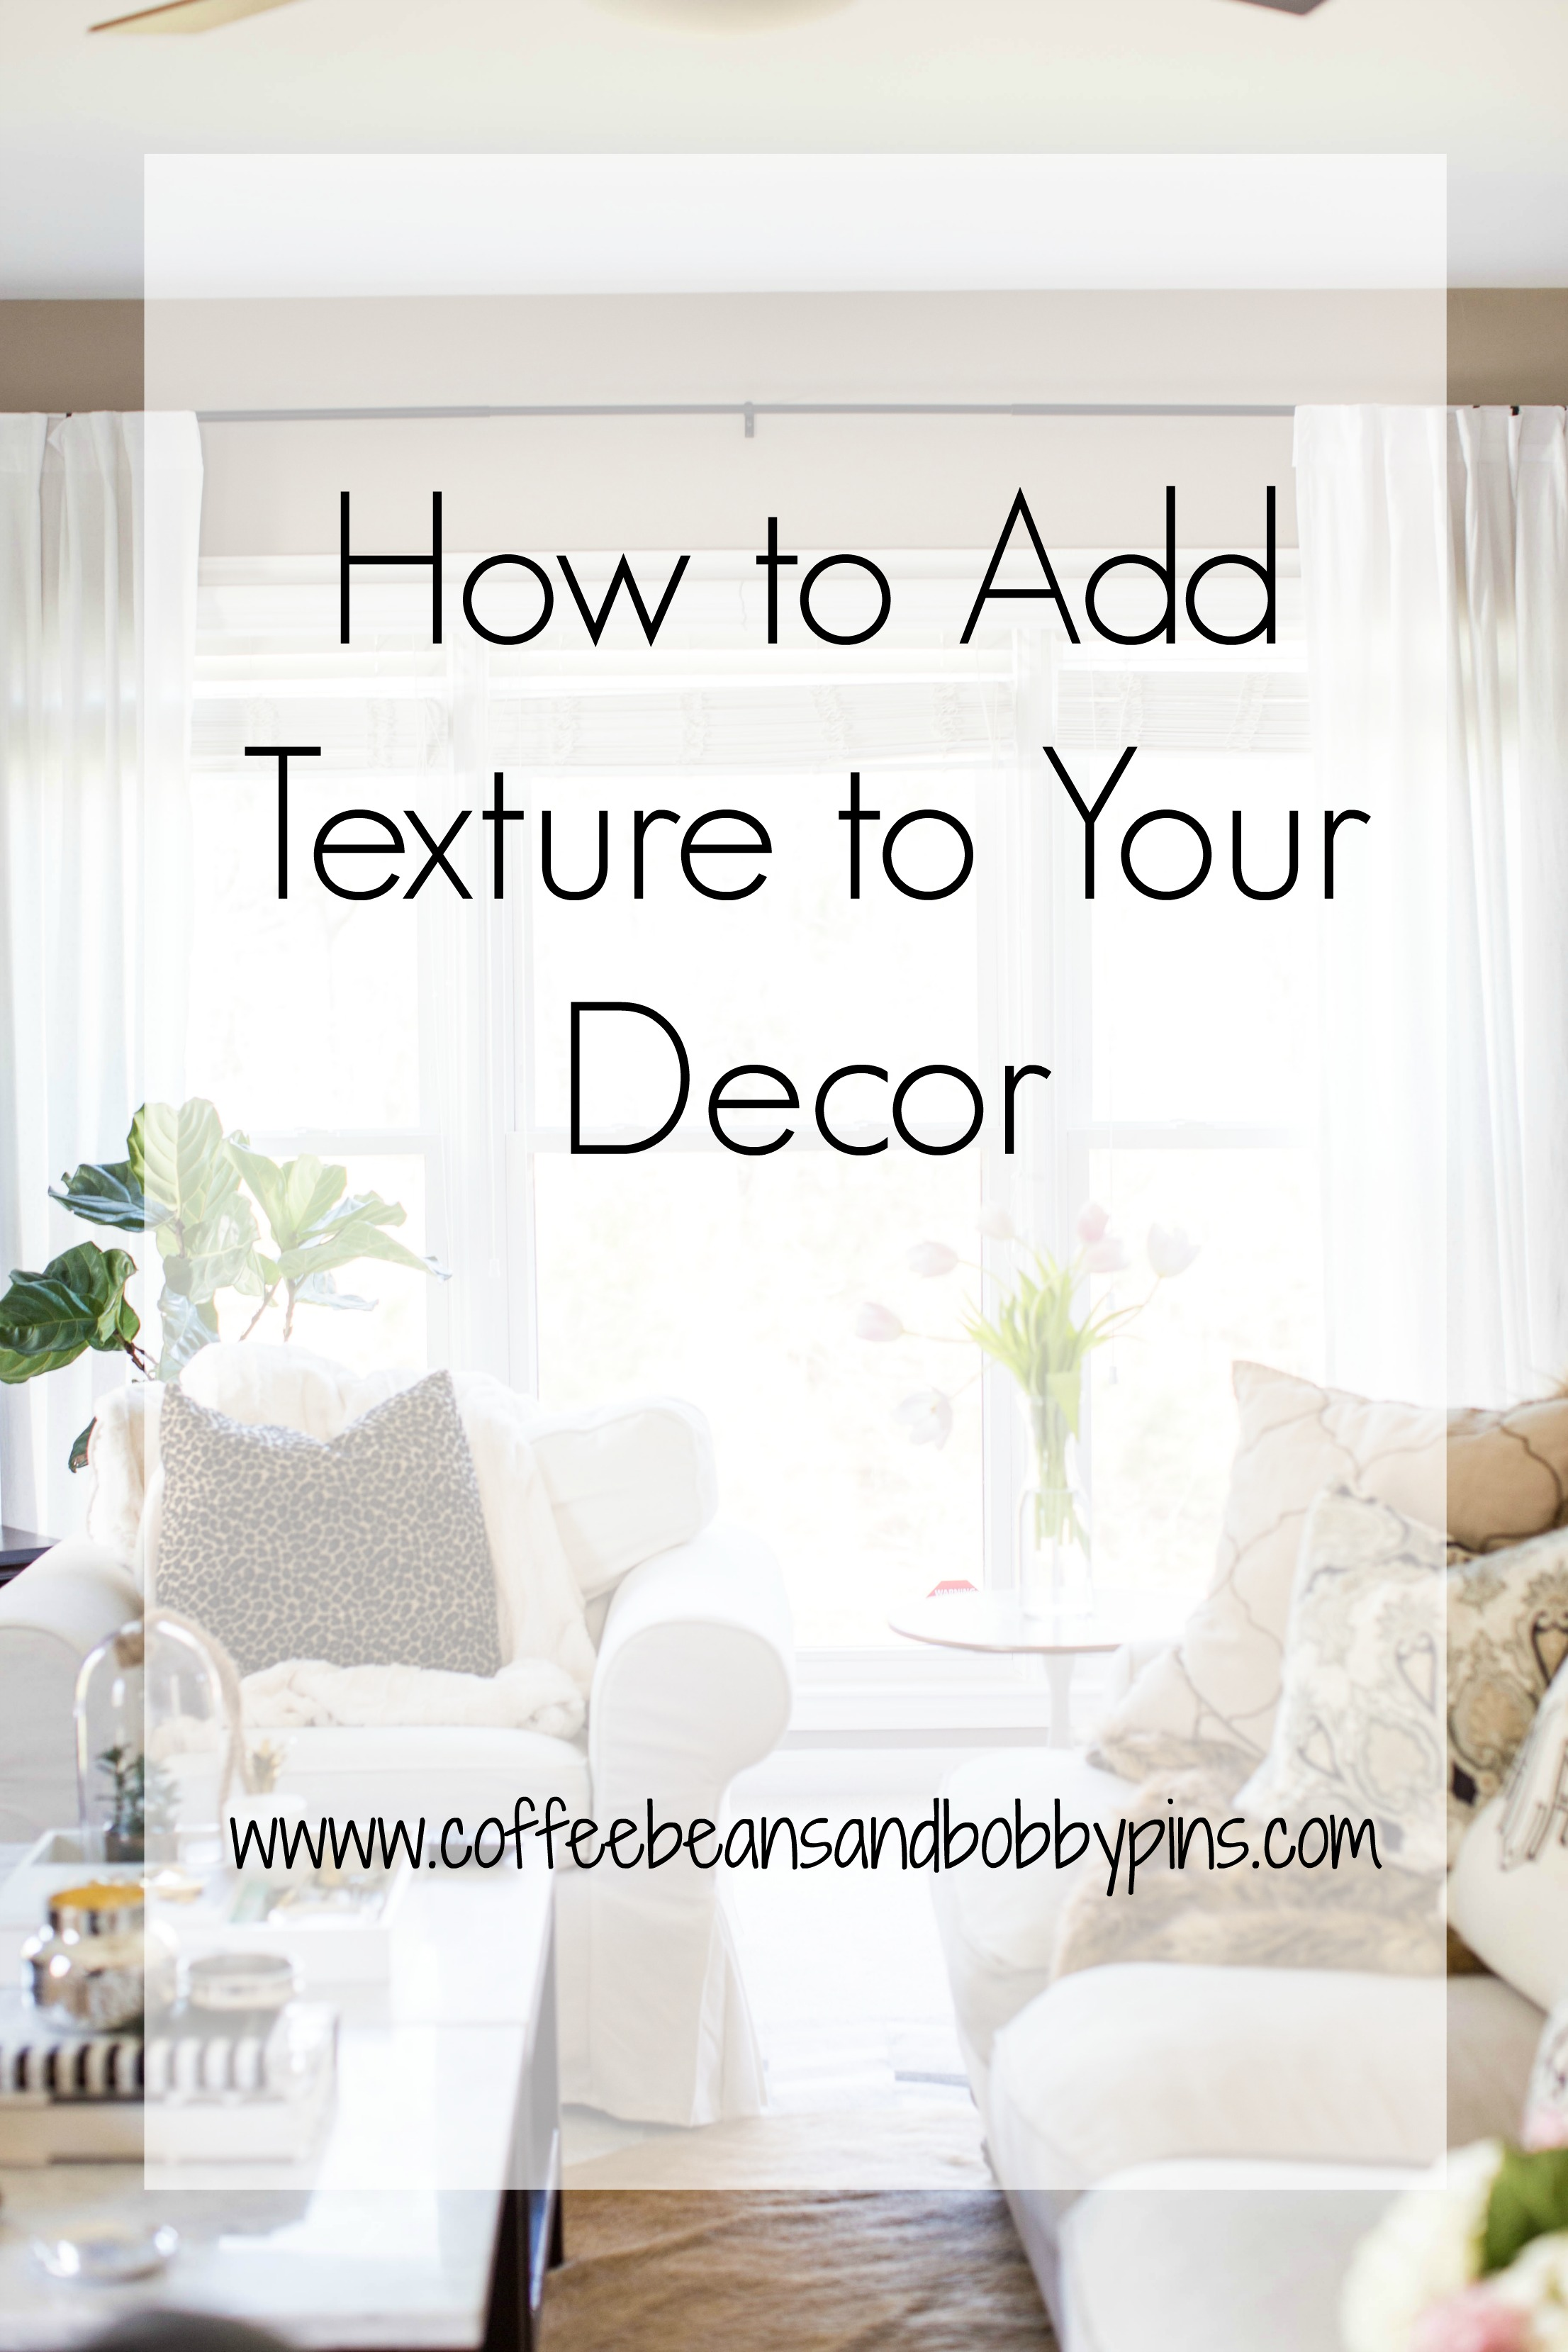 How to Add Texture to Your Home | coffeebeansandbobbypins.com